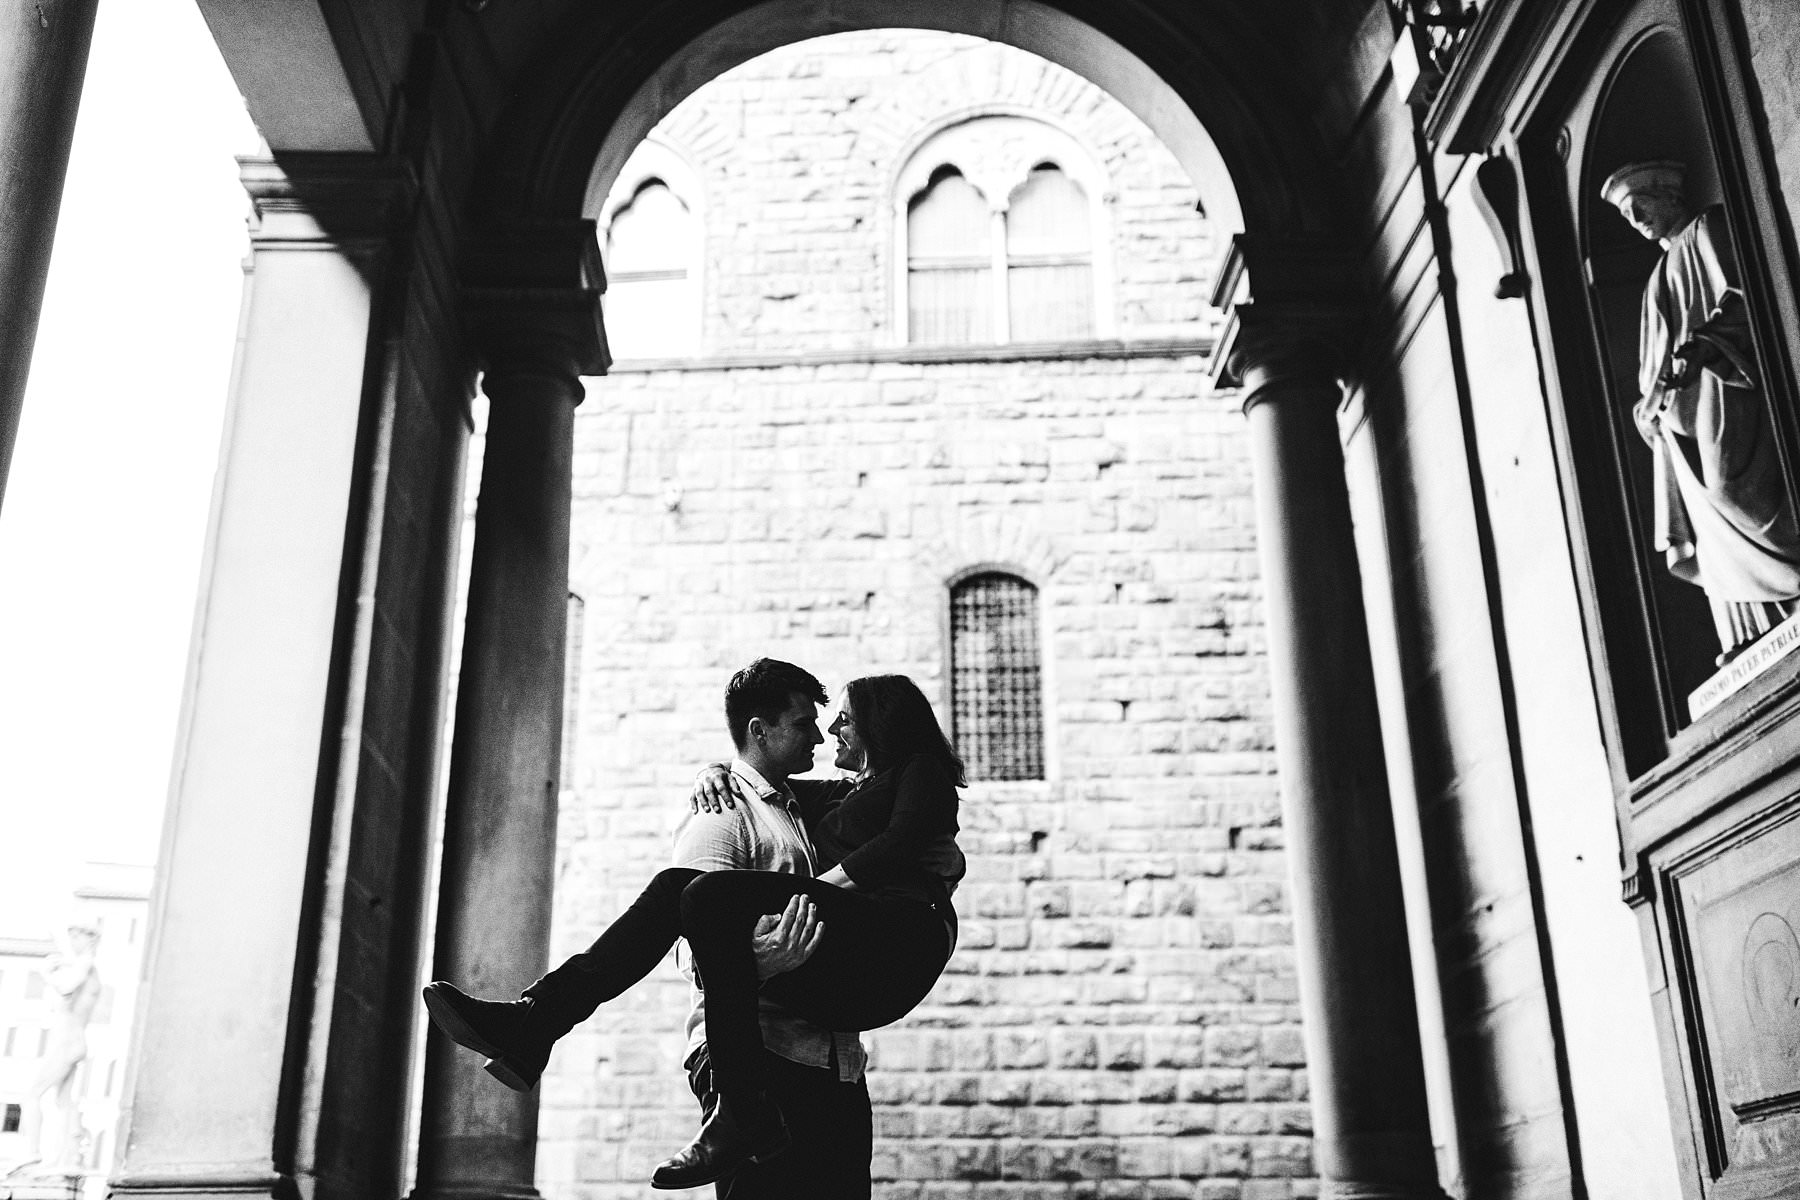 Claudia and Andrew's exciting and fun engagement photos. Lovely couple portrait at Uffizi art Gallery near Palazzo Vecchio